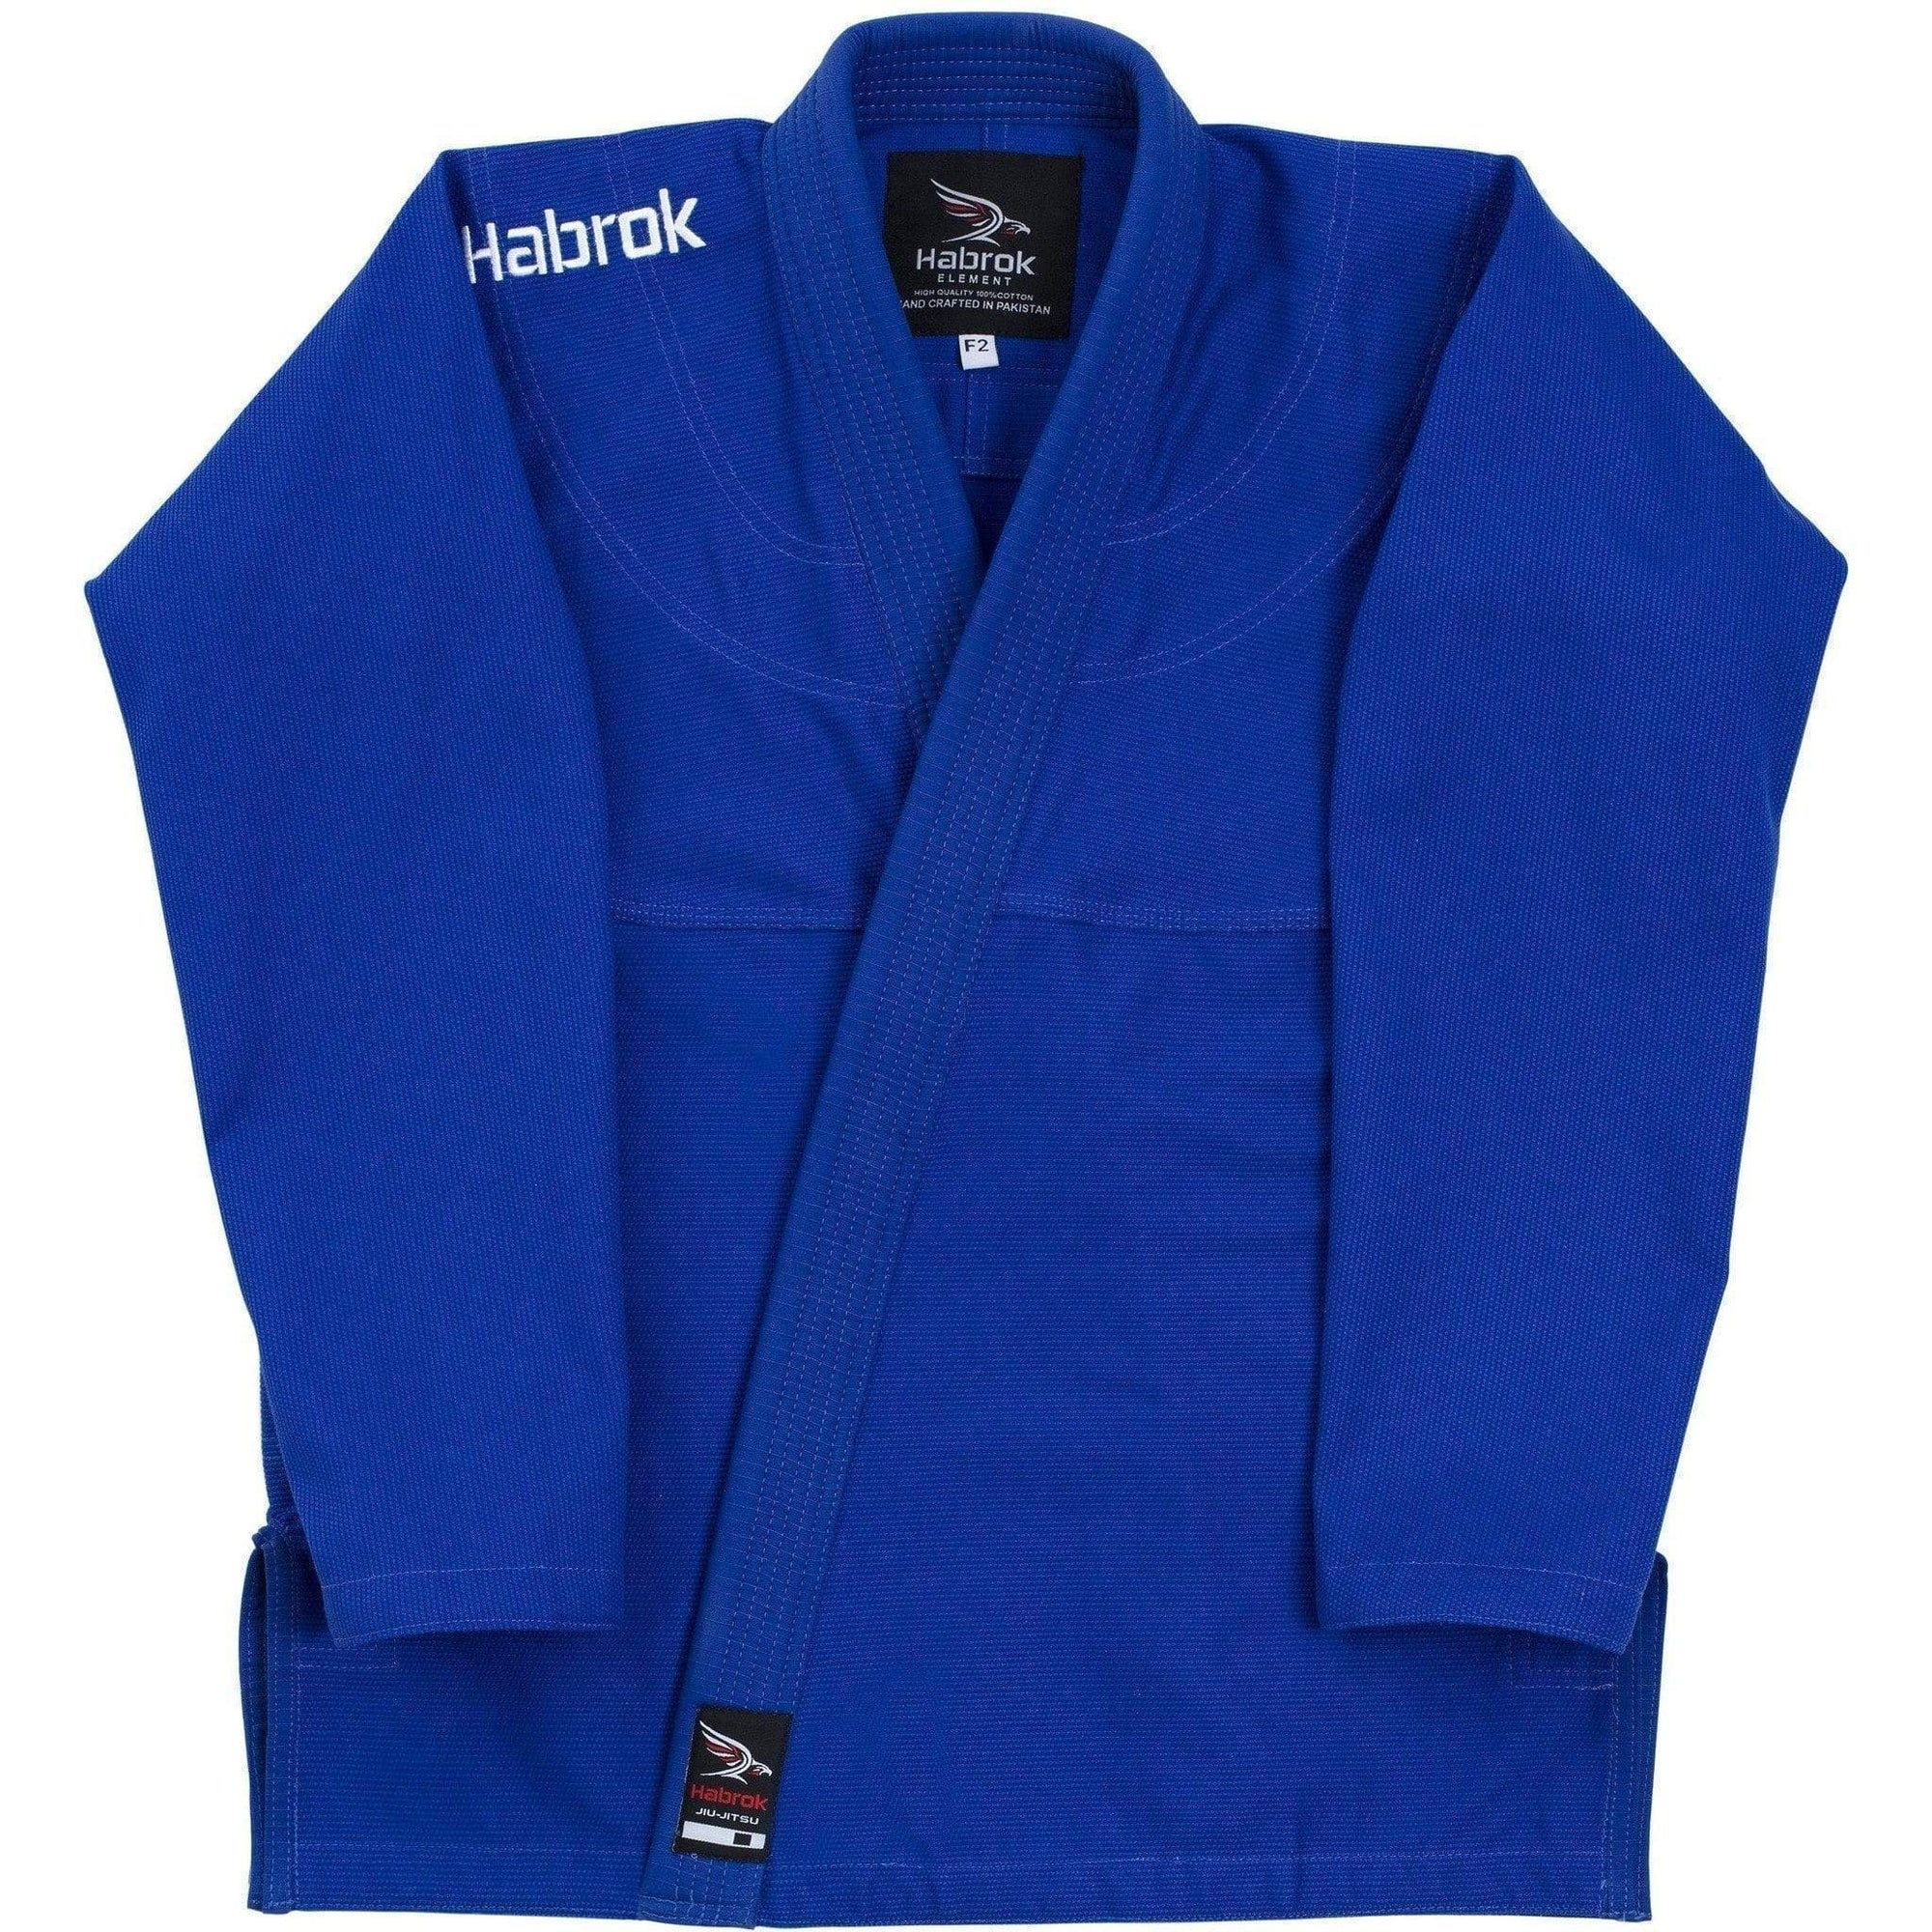 Habrok Jiu Jitsu Gi F0 / Blue Element Gi | Women 680334793788